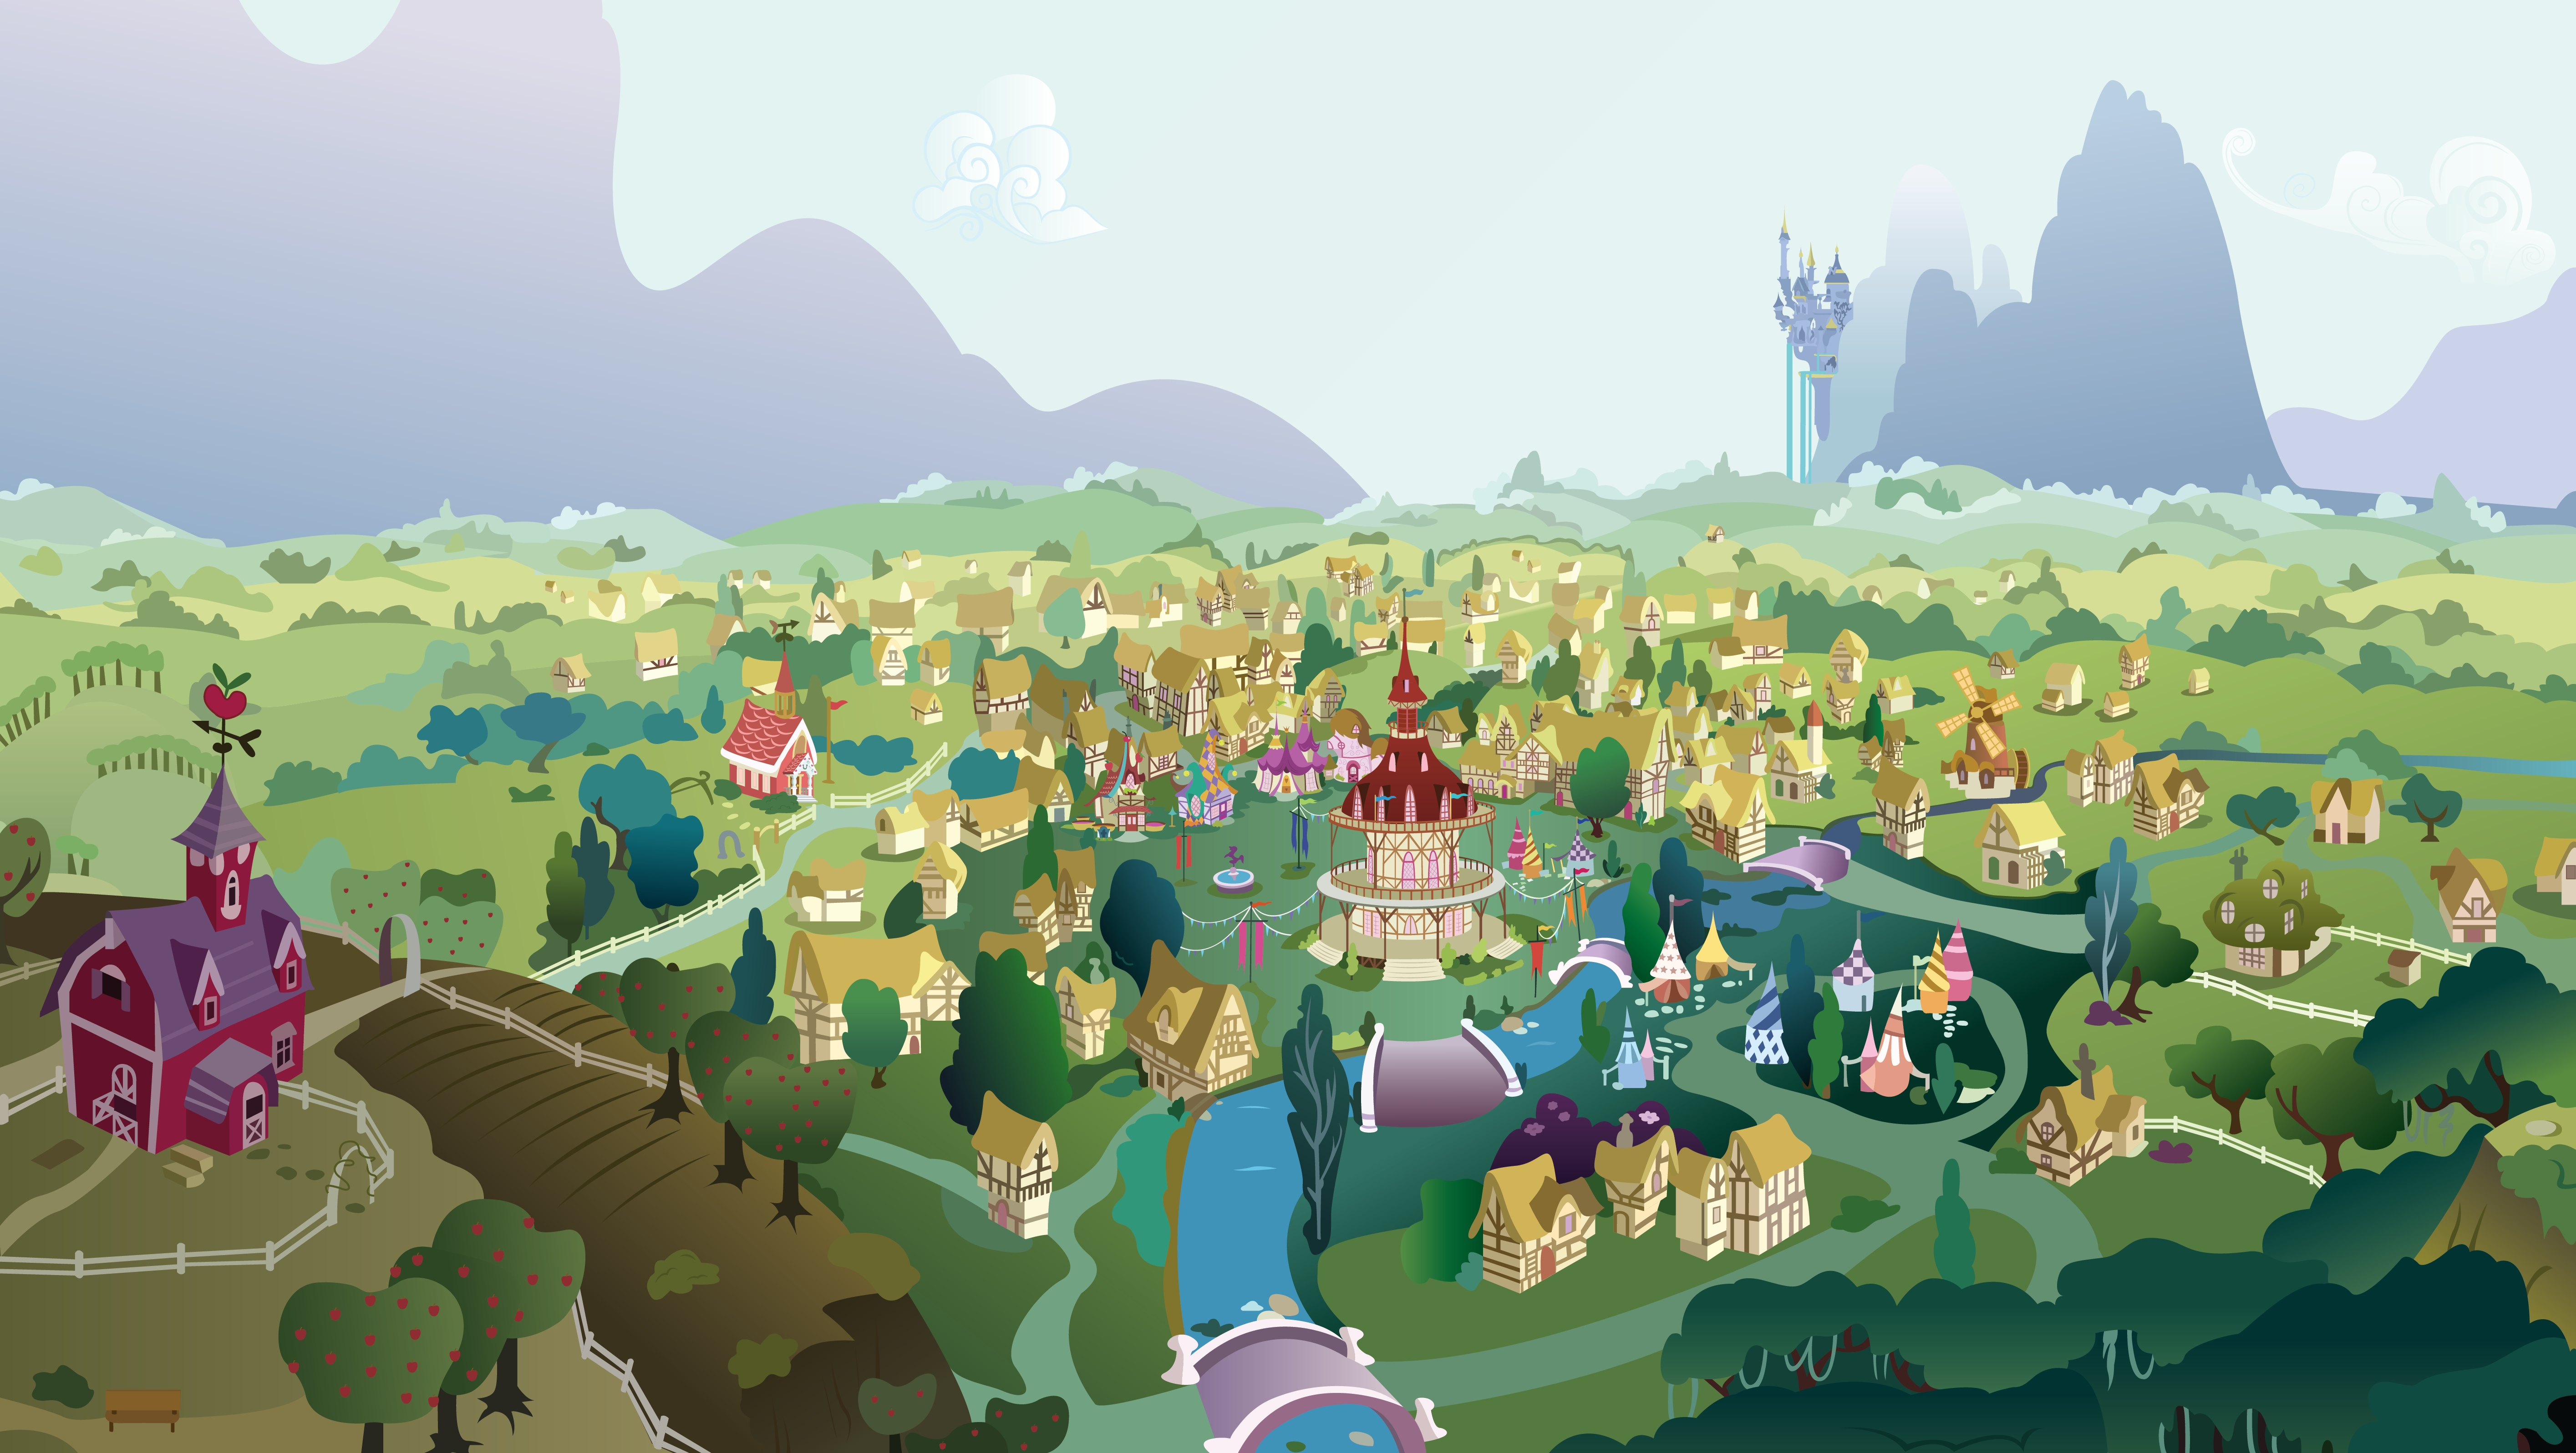 149030 download wallpaper Vector, City, Picture, Drawing, Multicolored, Motley, Colorful, Colourful, Mountains screensavers and pictures for free